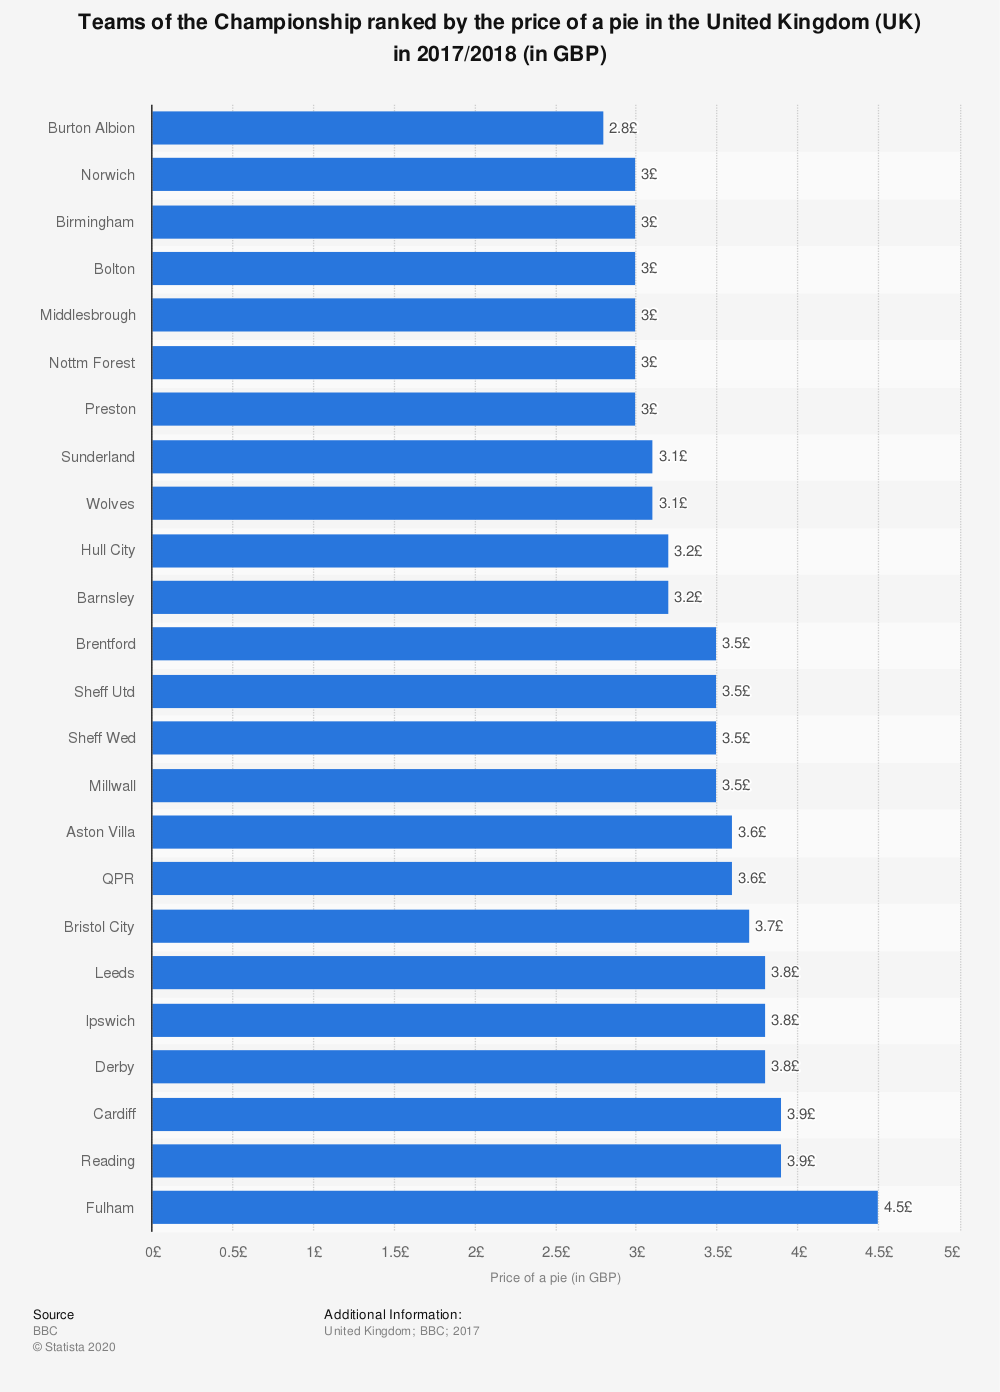 Statistic: Teams of the Championship ranked by the price of a pie in the United Kingdom (UK) in 2017/2018 (in GBP) | Statista